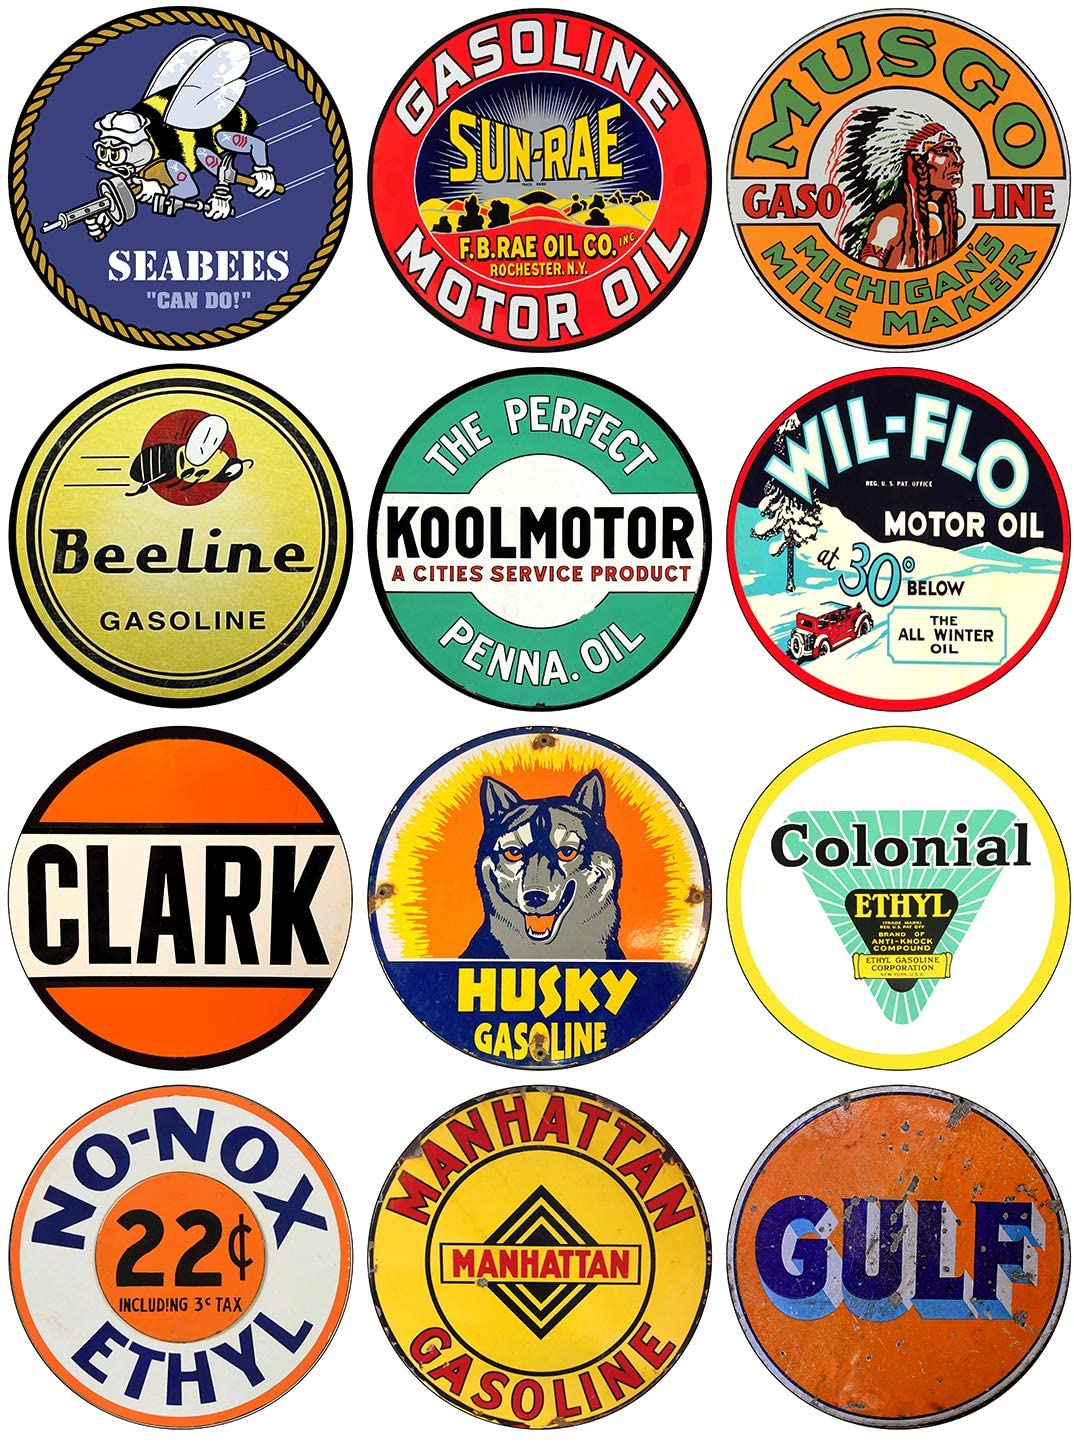 Brotherhood Vintage Gas Sign Reproduction Vintage Metal Signs Round Metal Tin Sign for Garage and Home 12 Inch Diameter – Seabees Combo 2